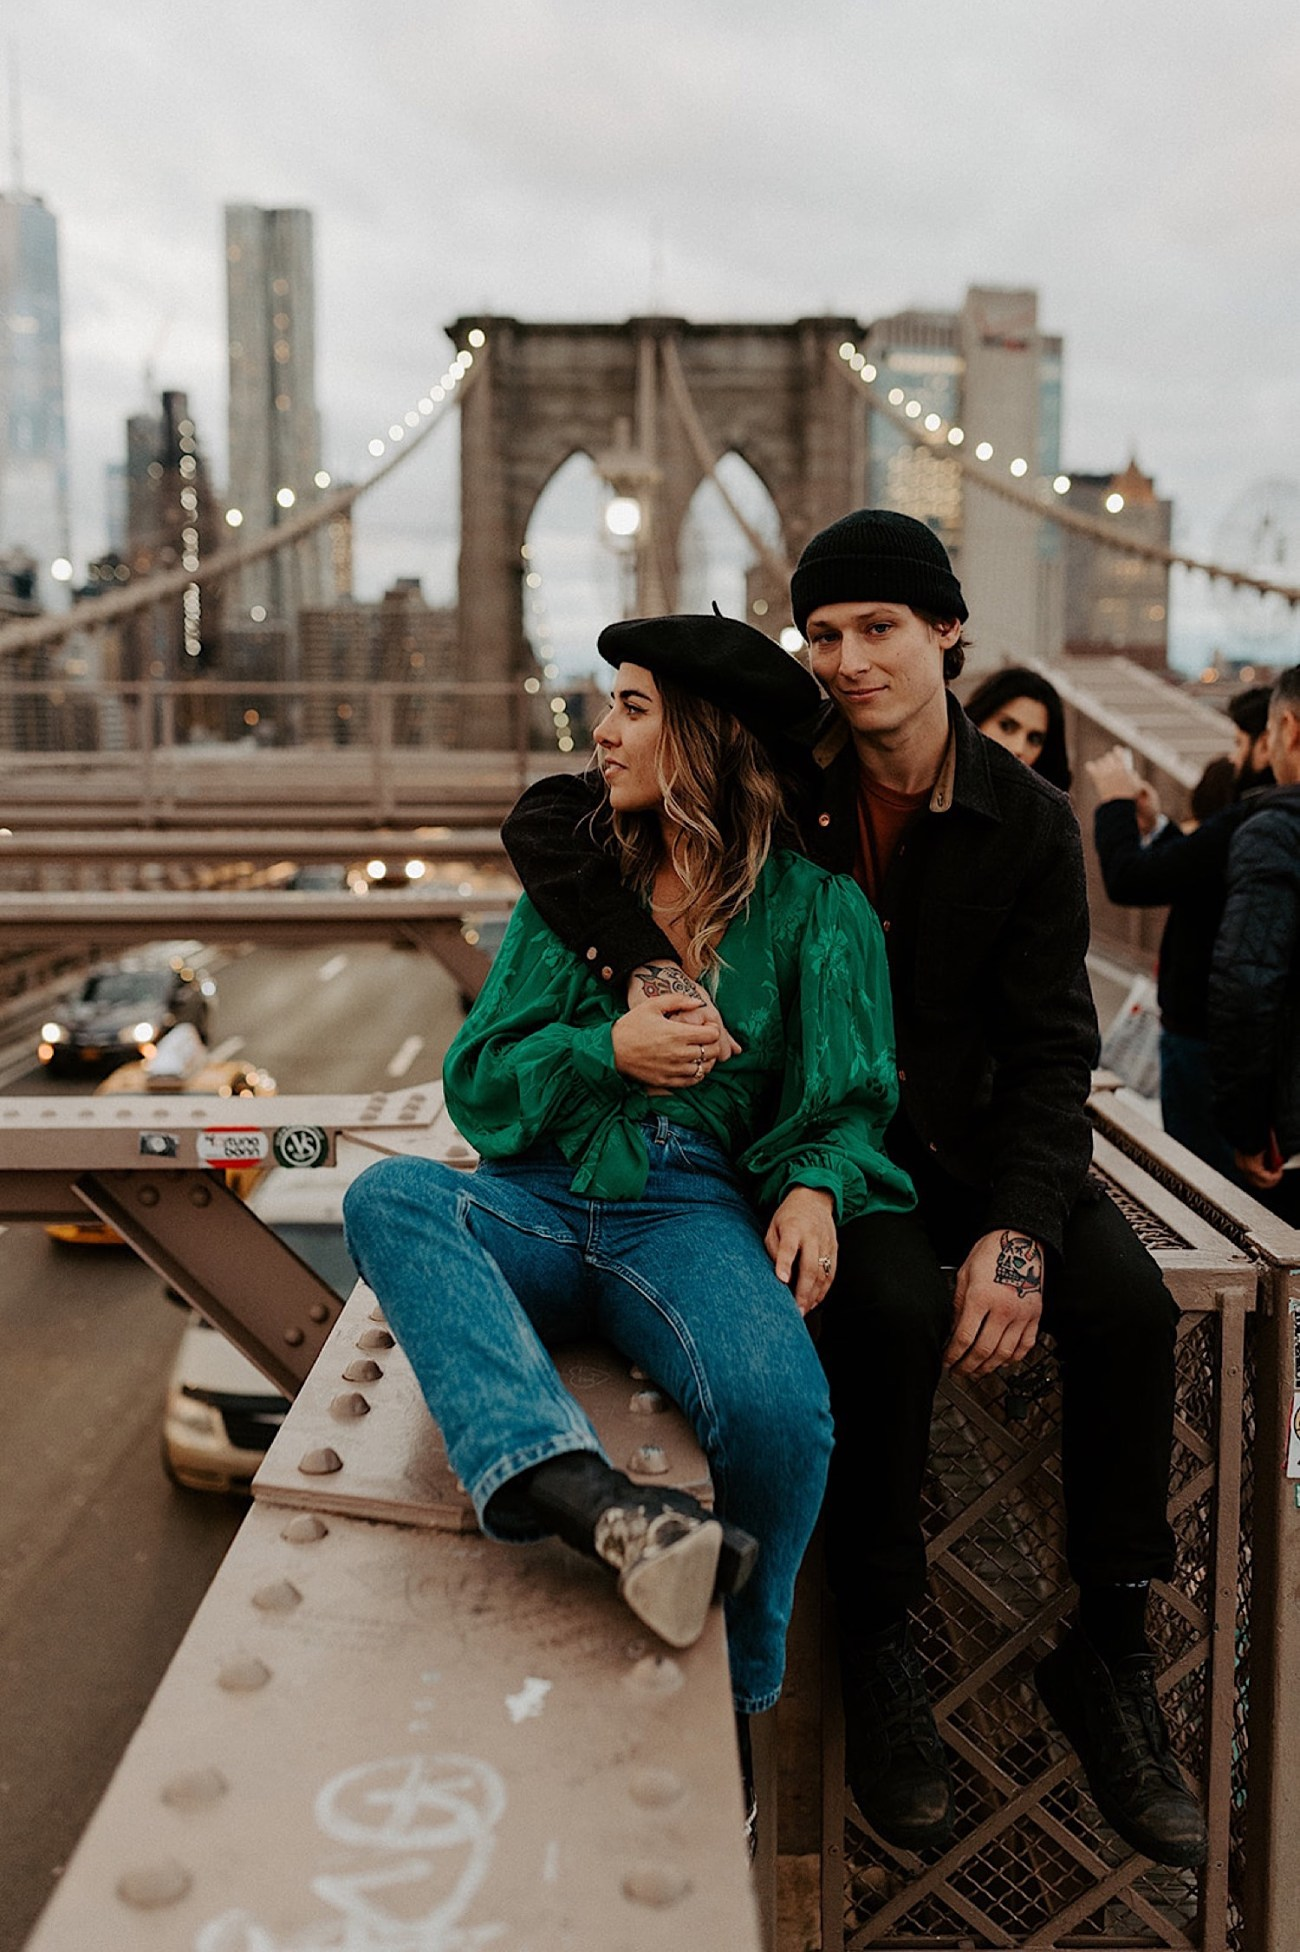 084 Brooklyn Bridge Engagement Photos Brooklyn Engagement Session NYC Wedding Photographer Washington Street Brooklyn